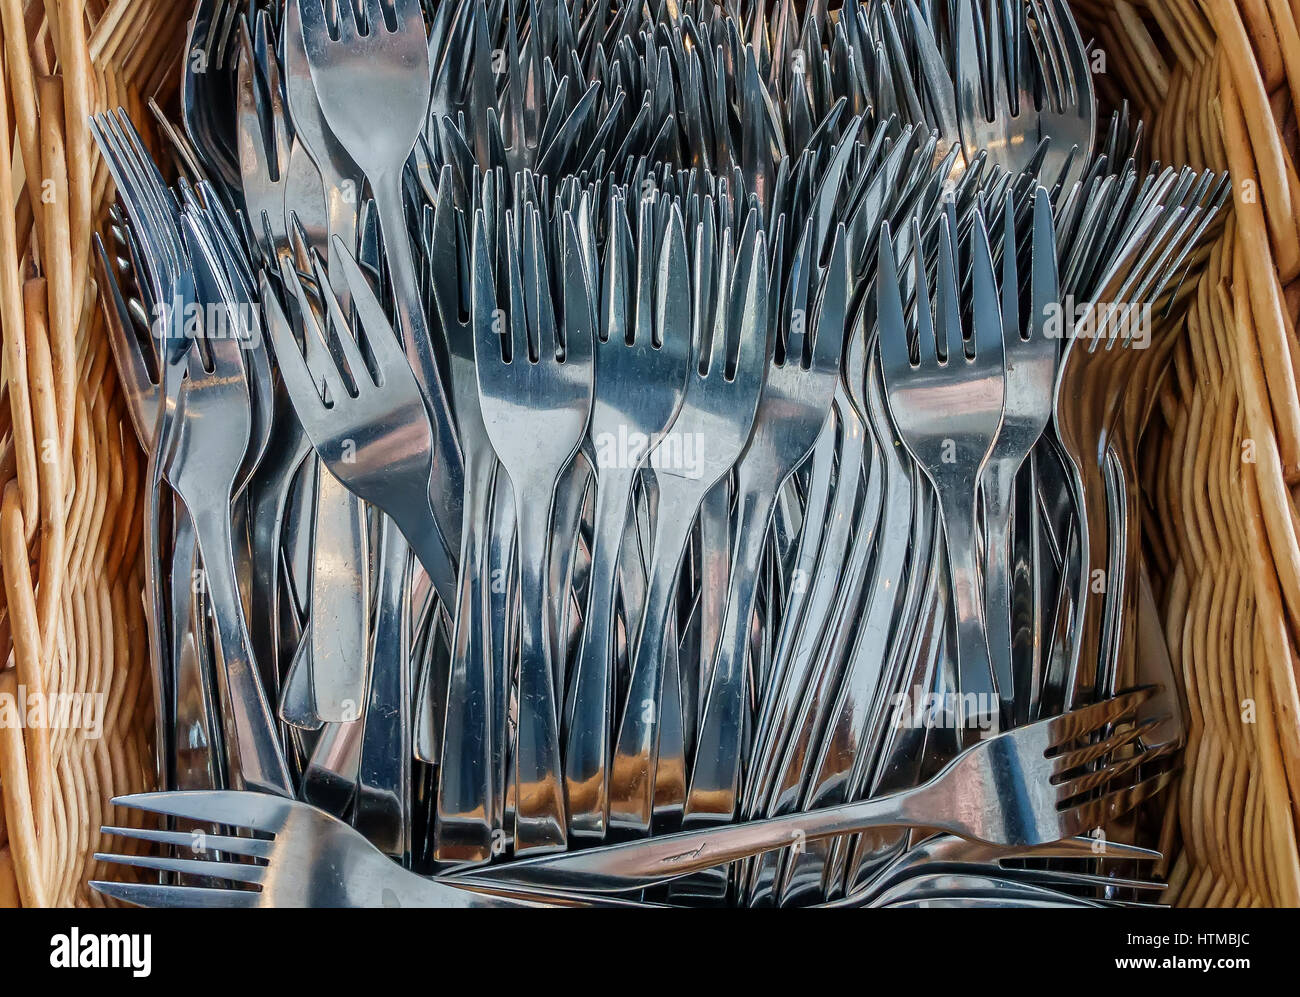 Forks in a basket - Stock Image